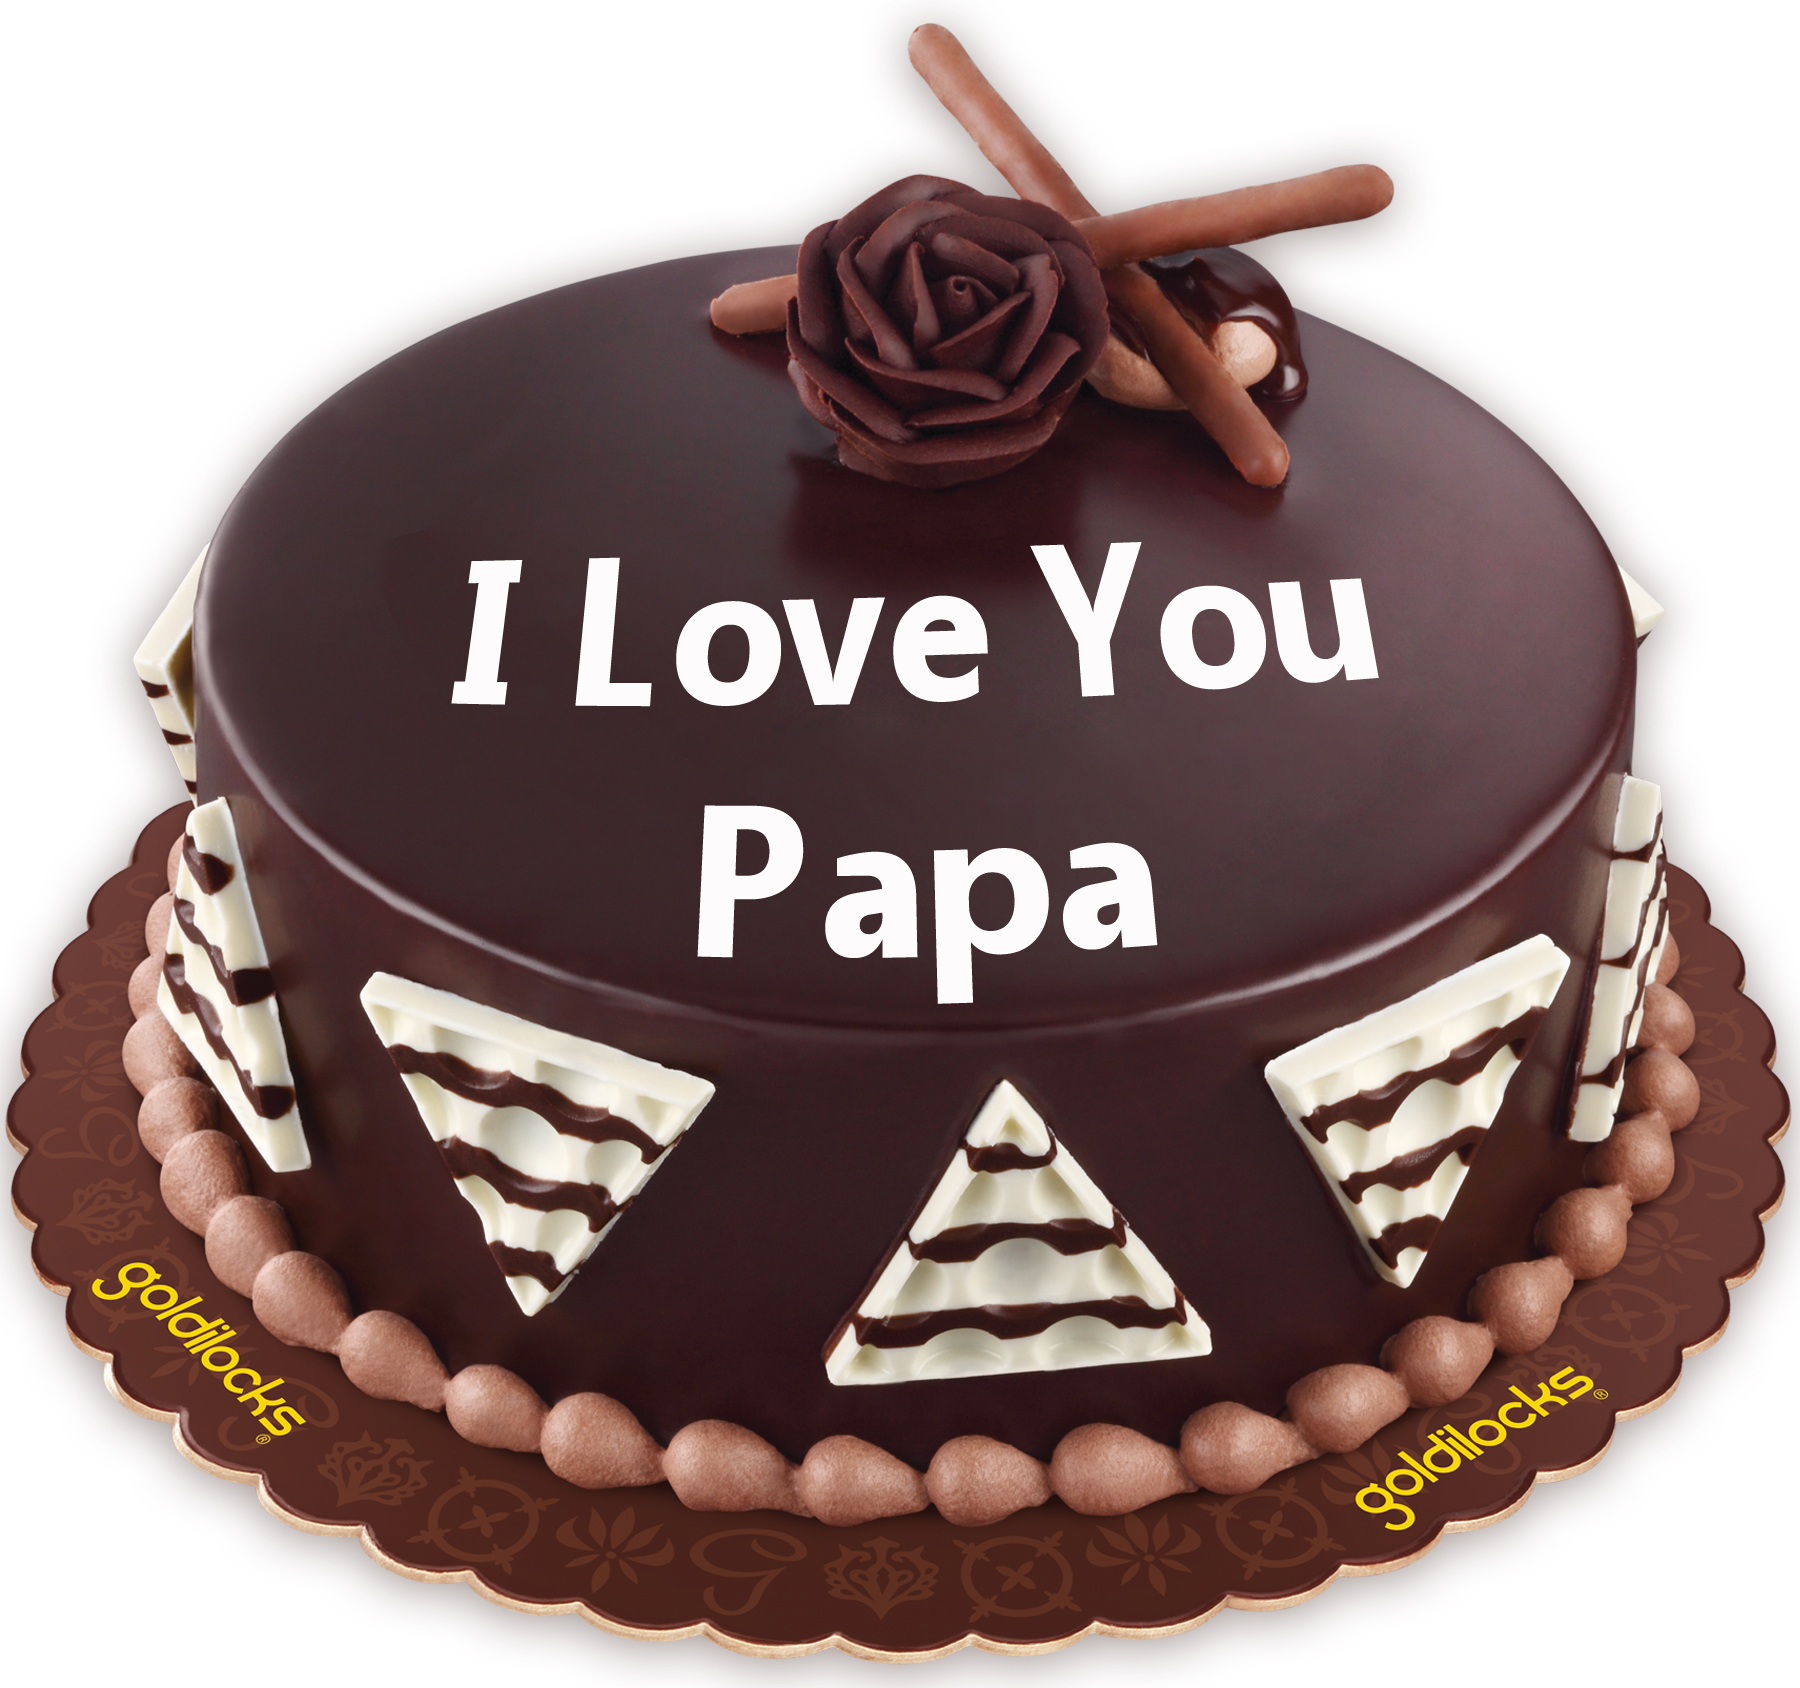 I Love You Papa Chocolate Dedication Cake To Philippines